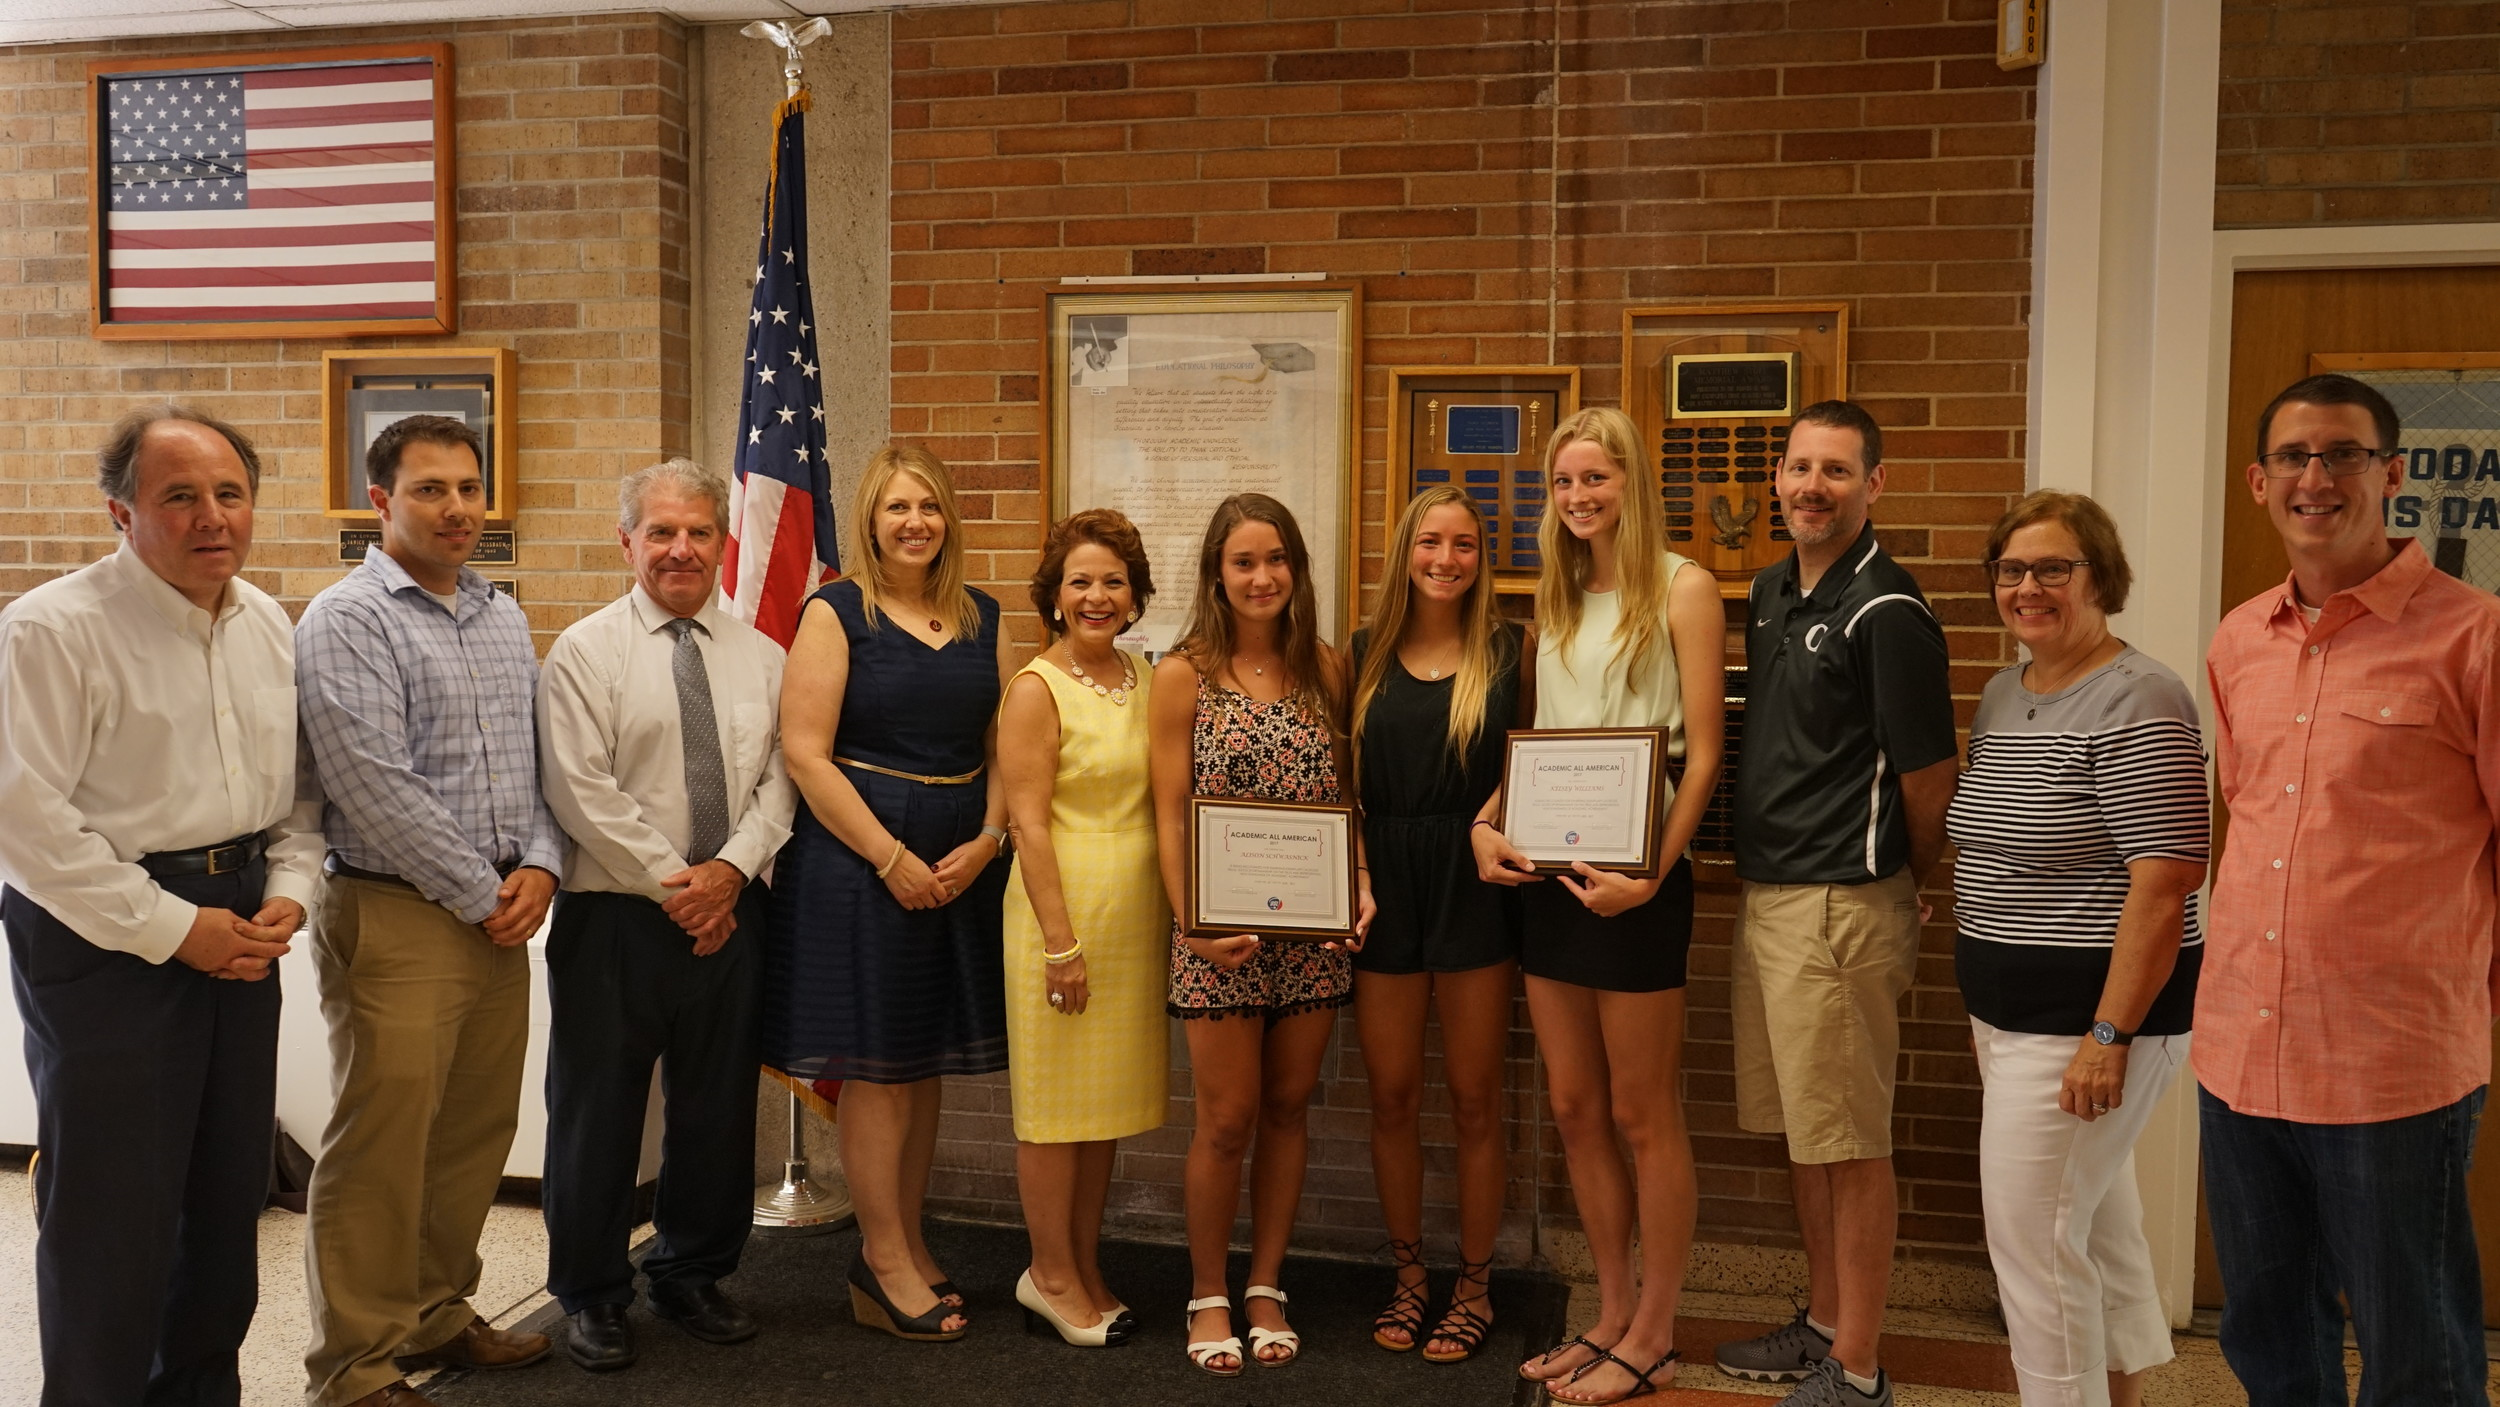 Alison Schwasnick, sixth from left, Christina McCabe and Kelsey Williams, with Frank Luisi, advisor for NCAA college-bound student athletes, left, guidance counselor John Madden, Jeff Risener, director of physical education, health and athletics, Assistant Superintendent Diane Provvido, School Superintendent Dr. Phyllis S. Harrington, former girls lacrosse coach Kenneth Dwyer, and guidance counselors Michele Mellilo and Kevin Carbonetti.